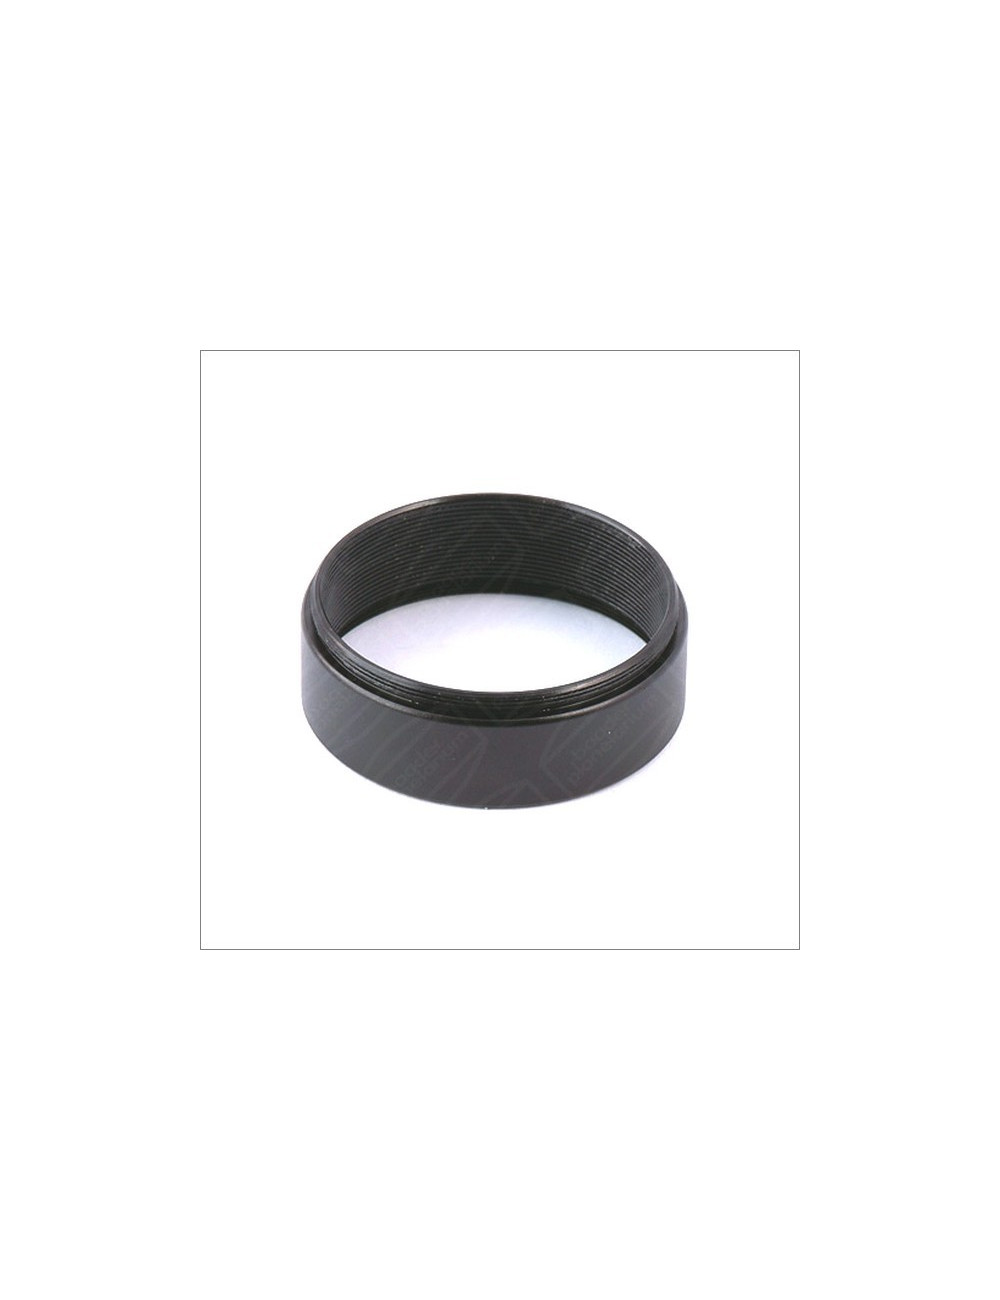 Bague d'extension 14mm Hyperion SP54/SP54